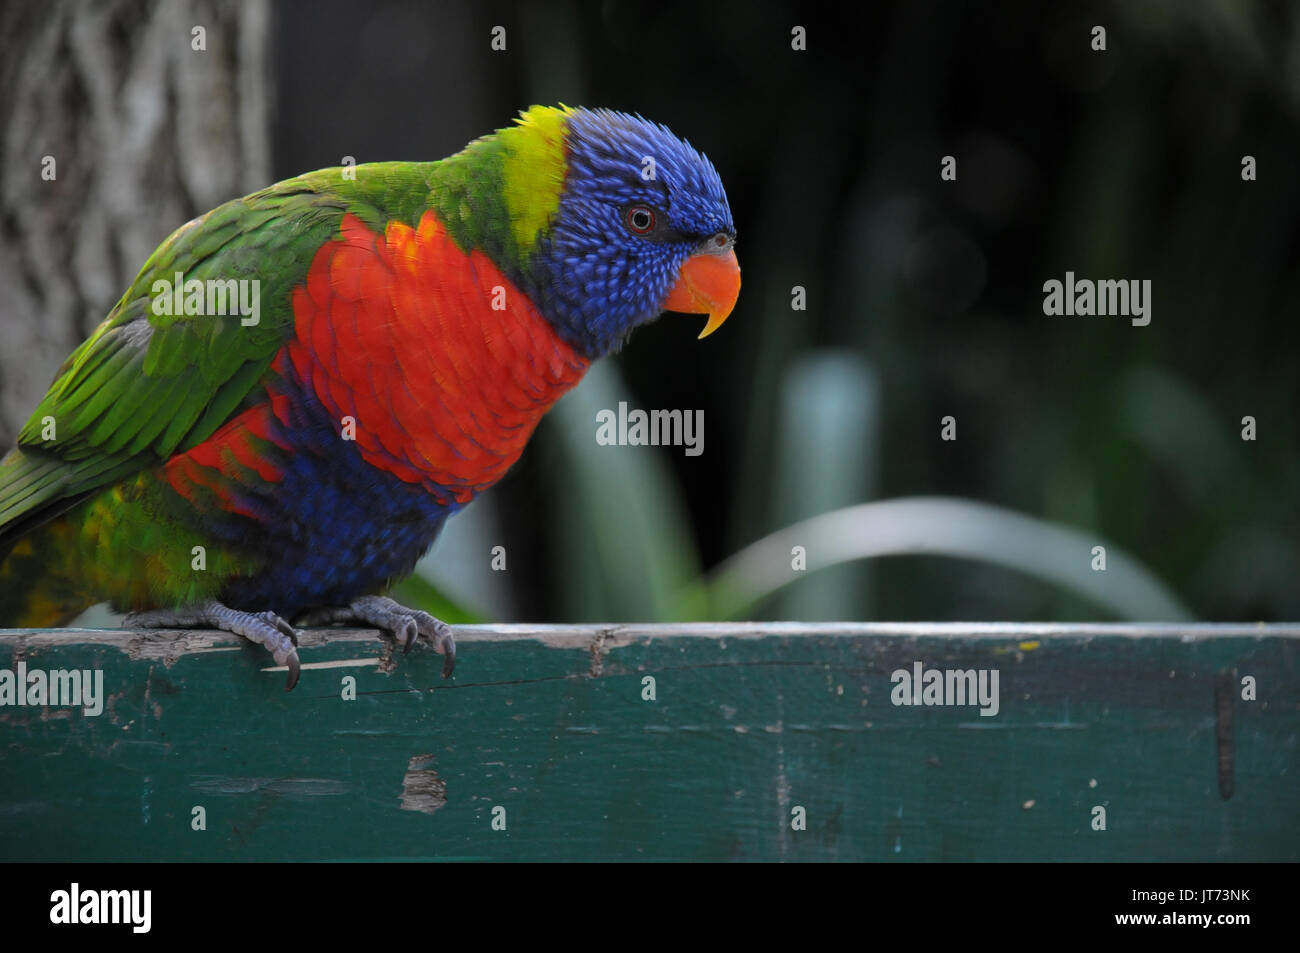 A colorful rainbow parakeet bird perched on a fence - Stock Image